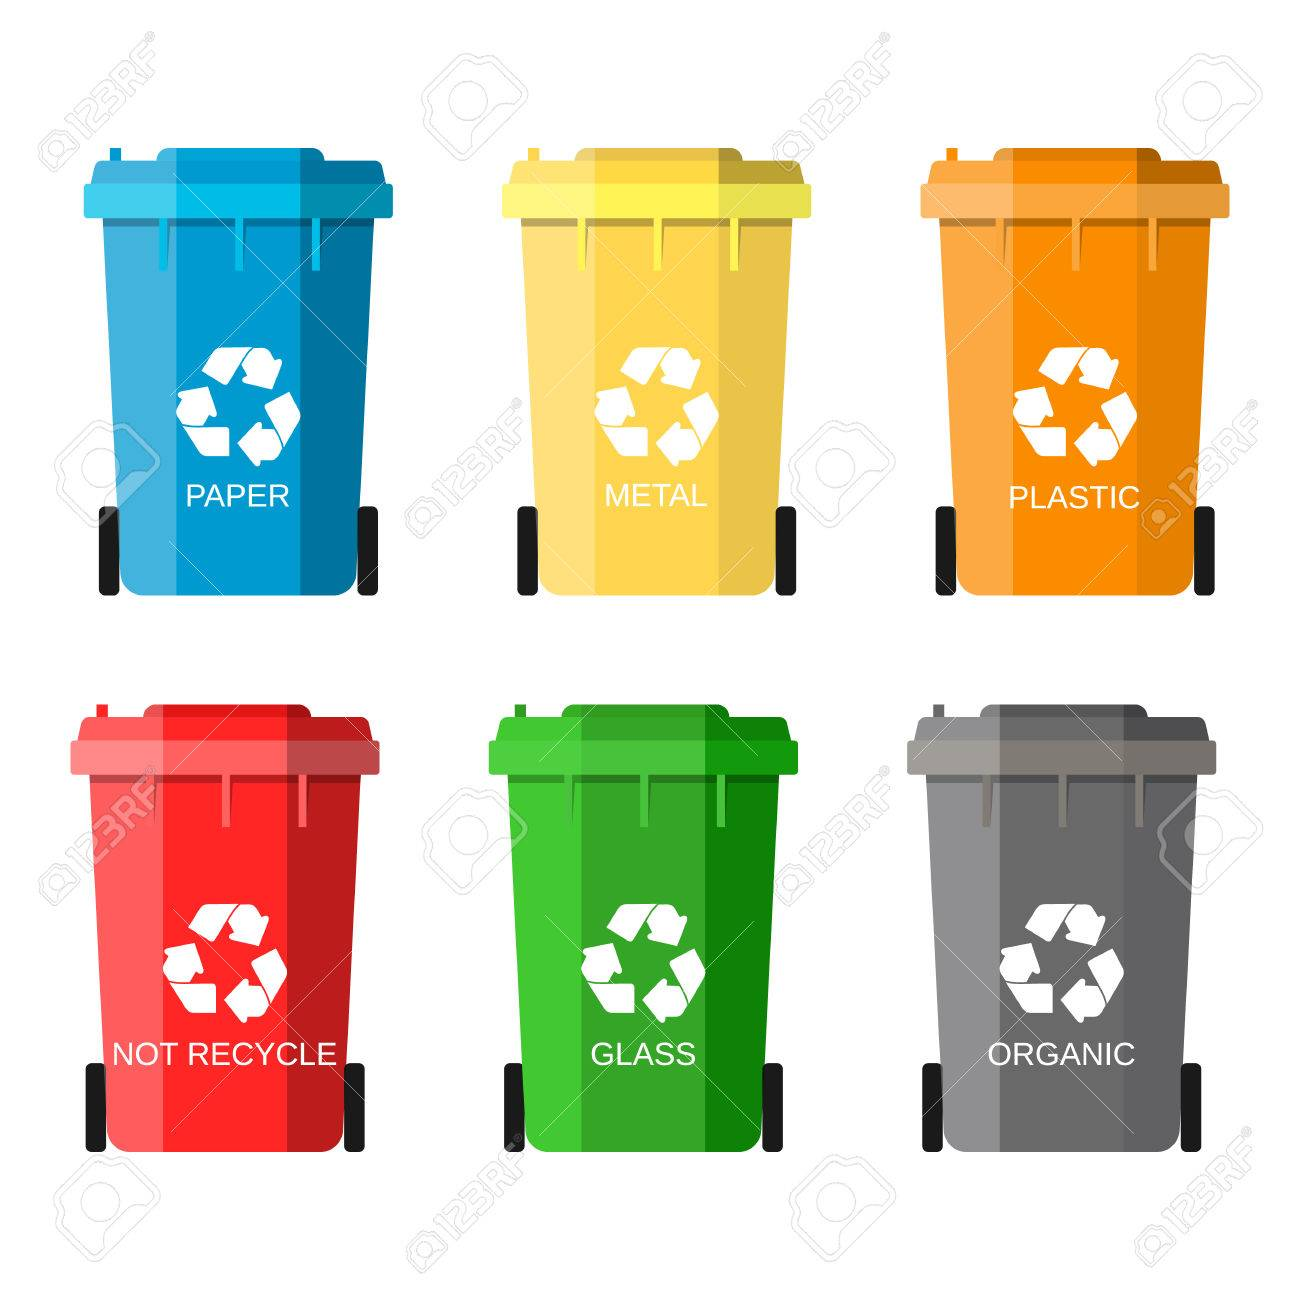 Colorful Garbage Cans Waste Management Concept Waste Segregation Separation Of Waste